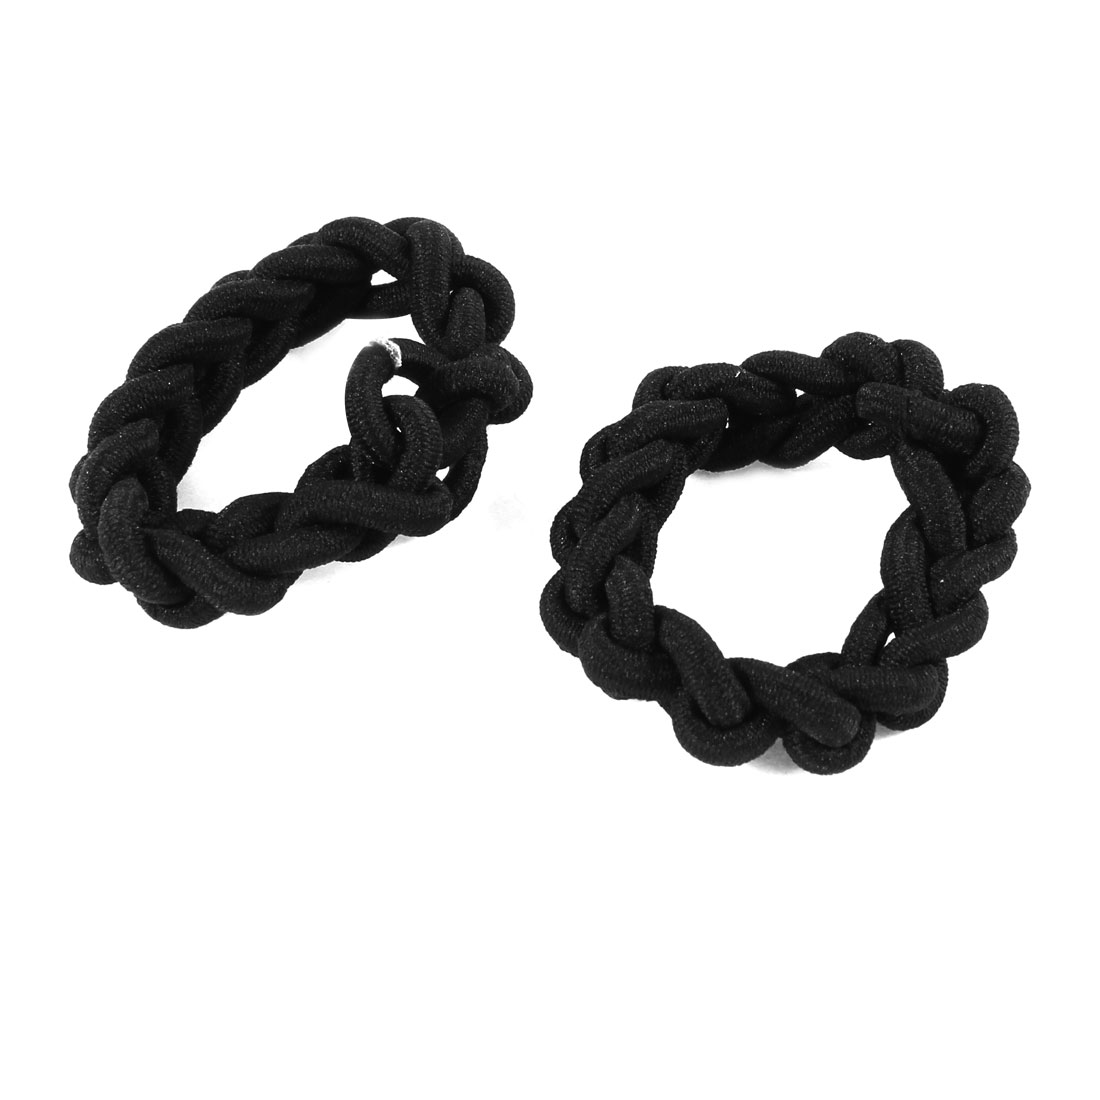 2 Pcs Black Braided Elastic Ponytail Holder Hair Bands Ties for Girl